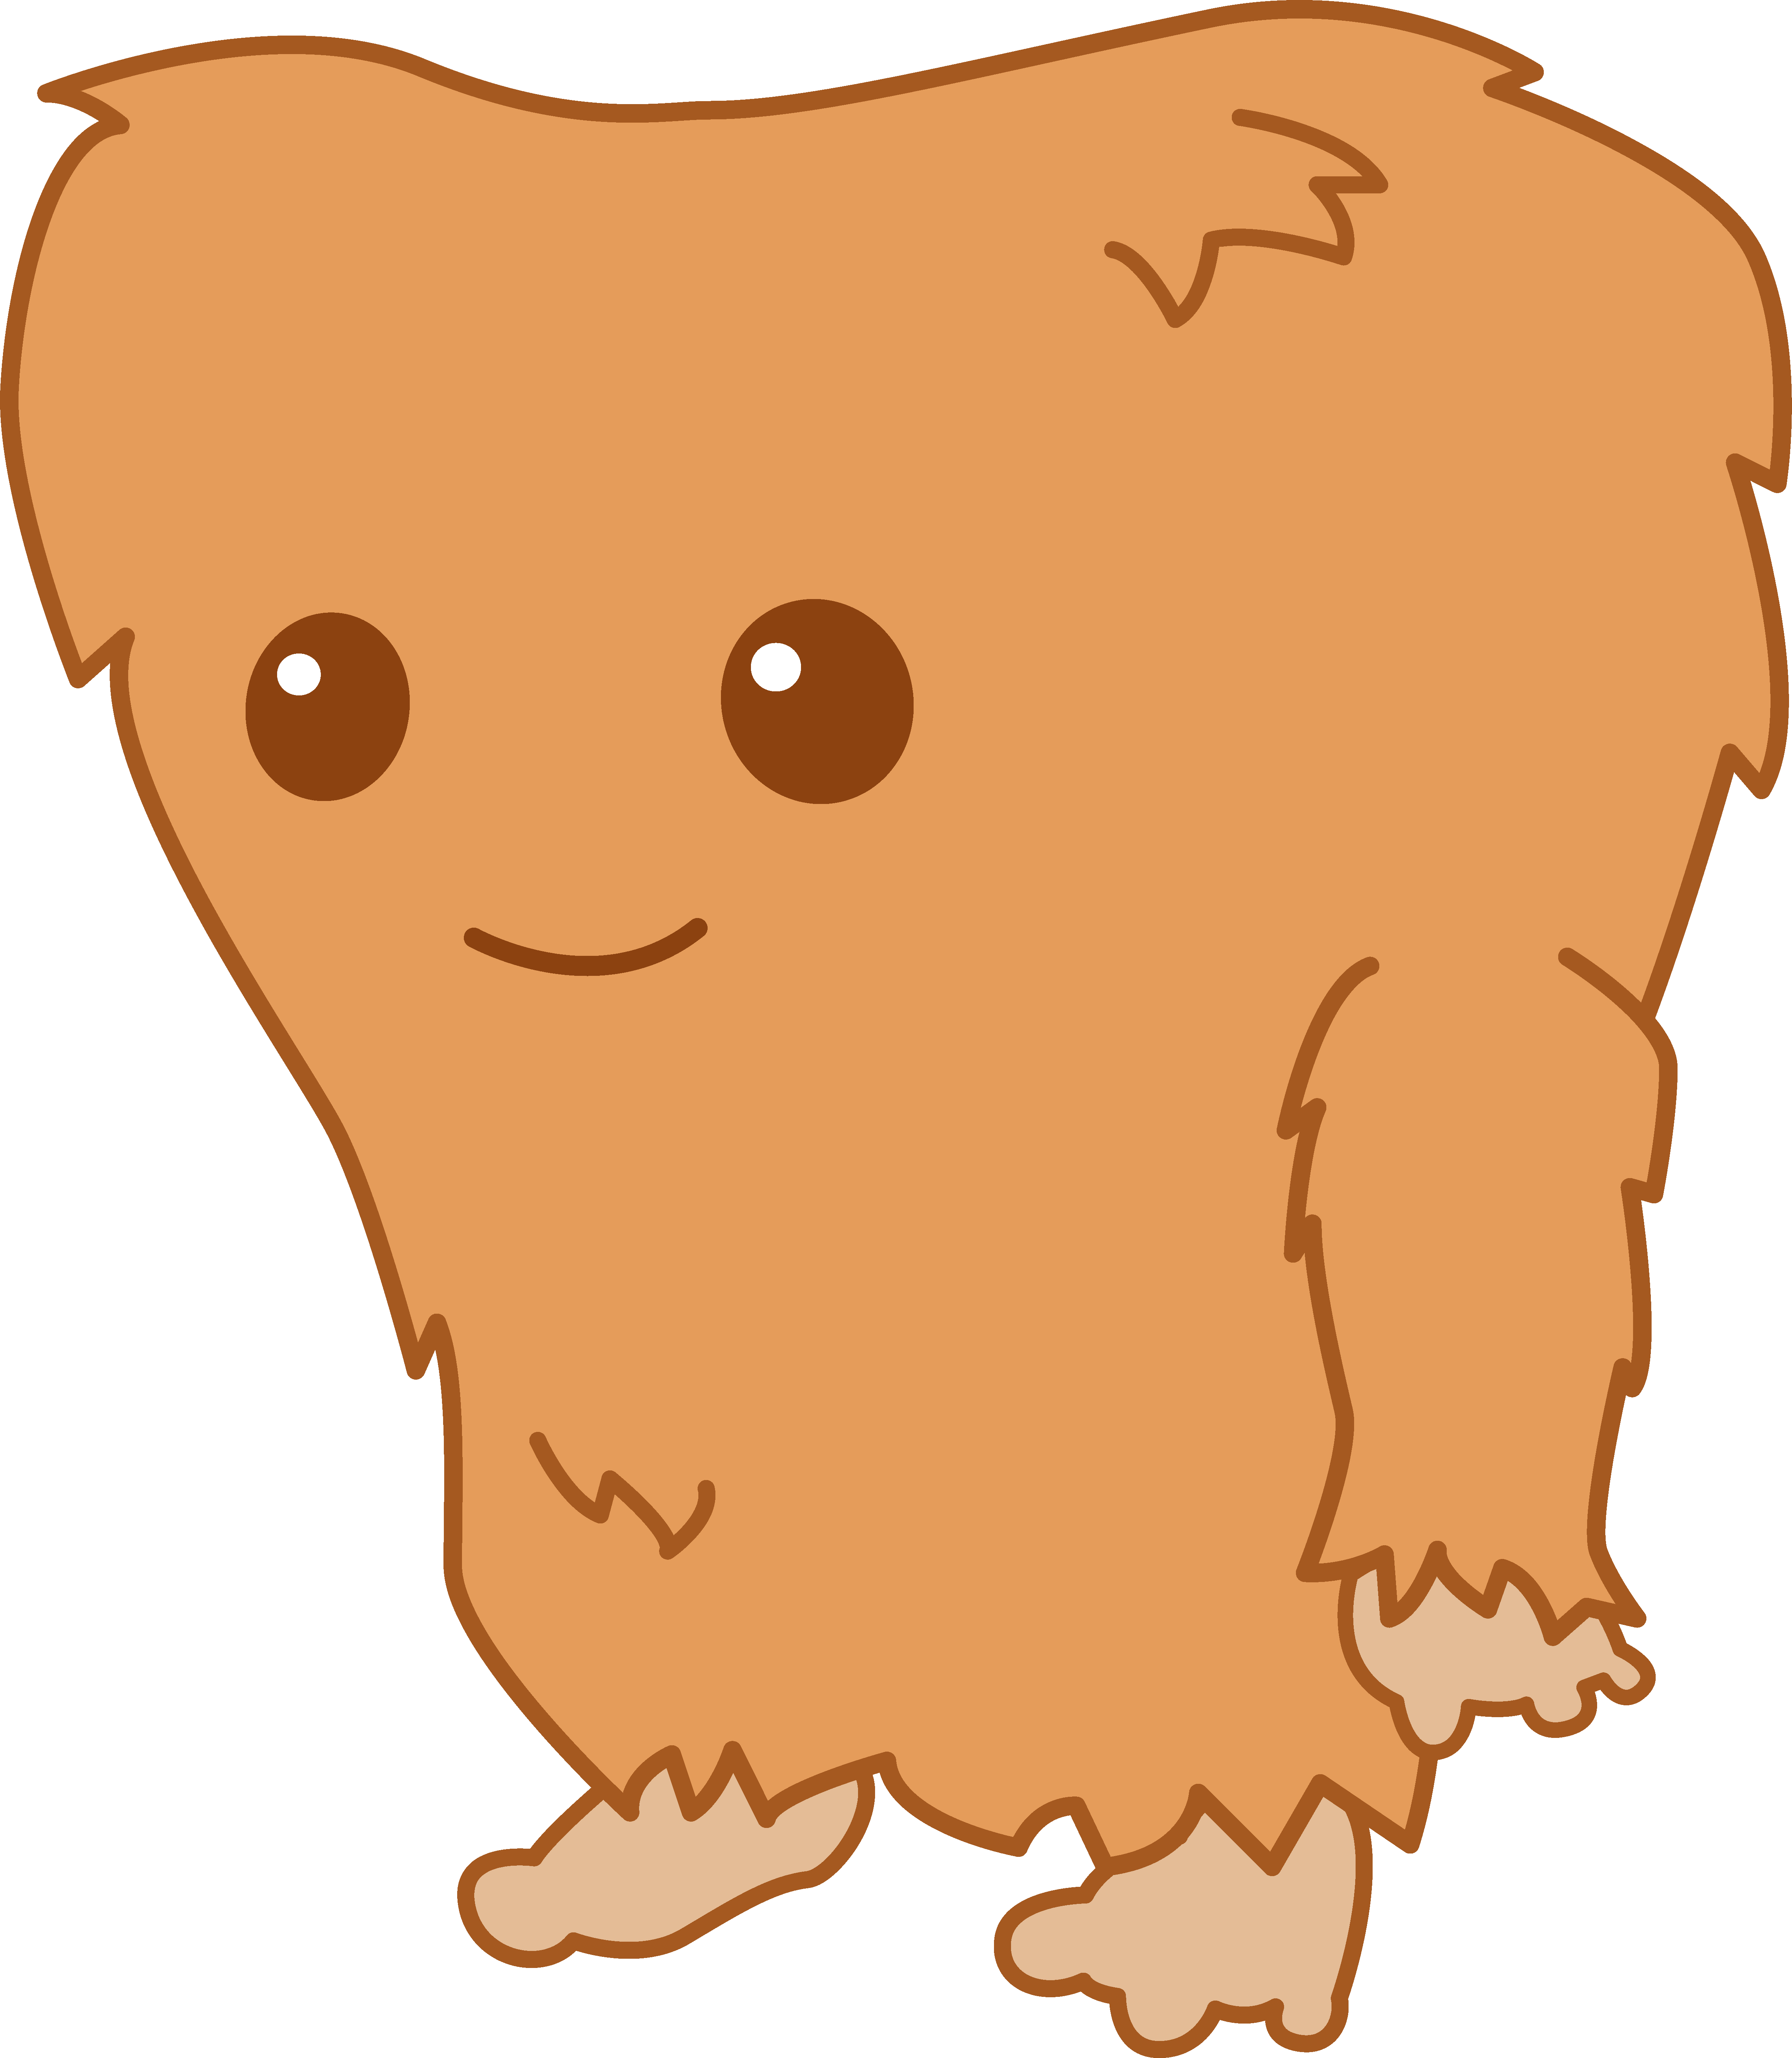 Friendly clipart monsters. Cute little bigfoot monster